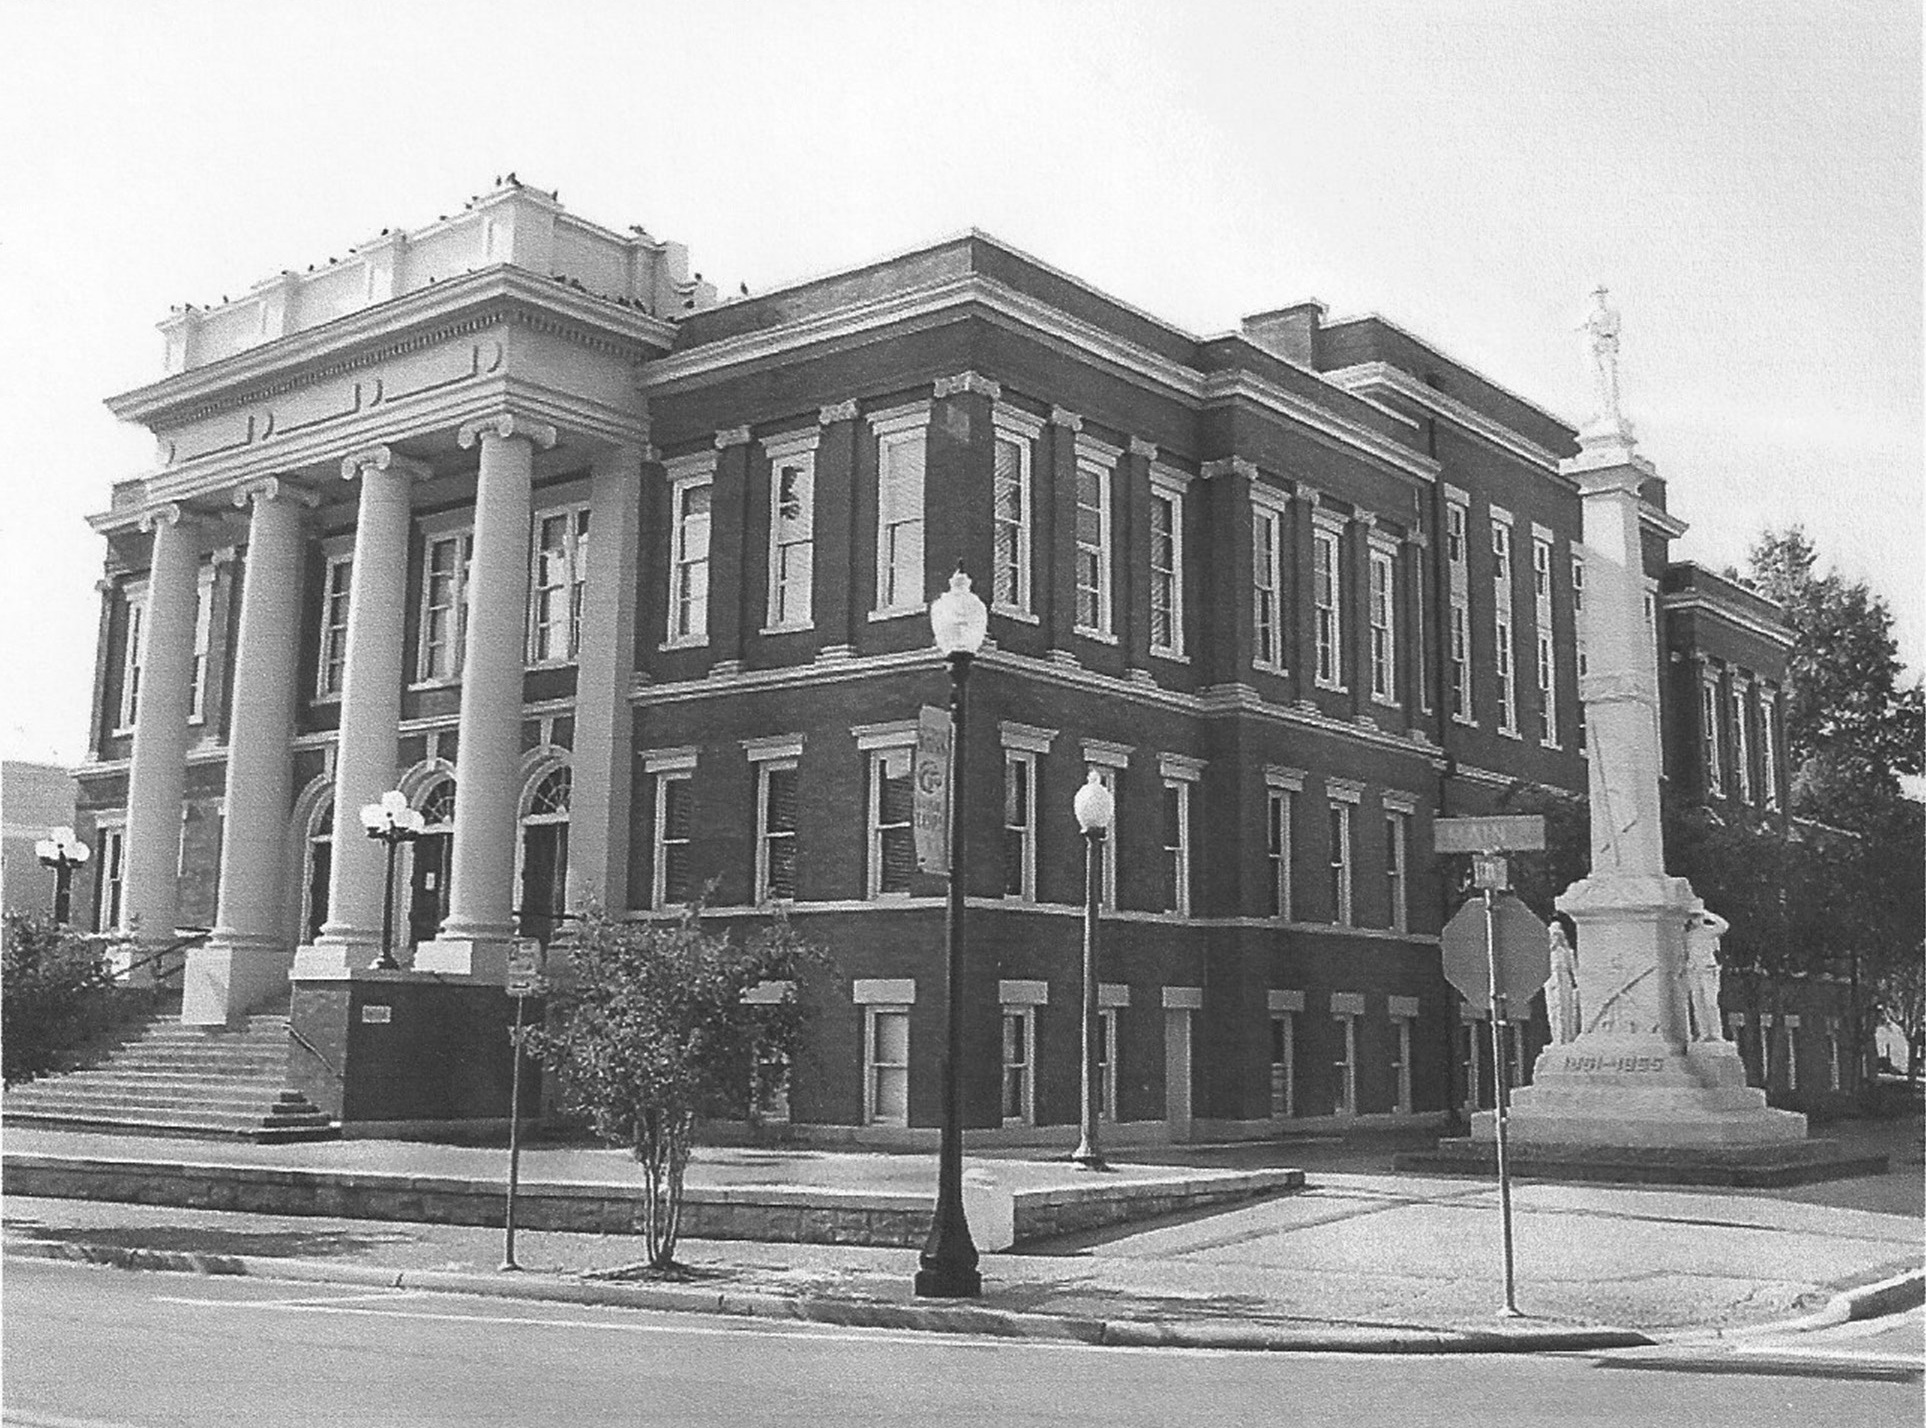 Forrest County Courthouse (with Confederate Monument) where Prince and Wexler were tried.